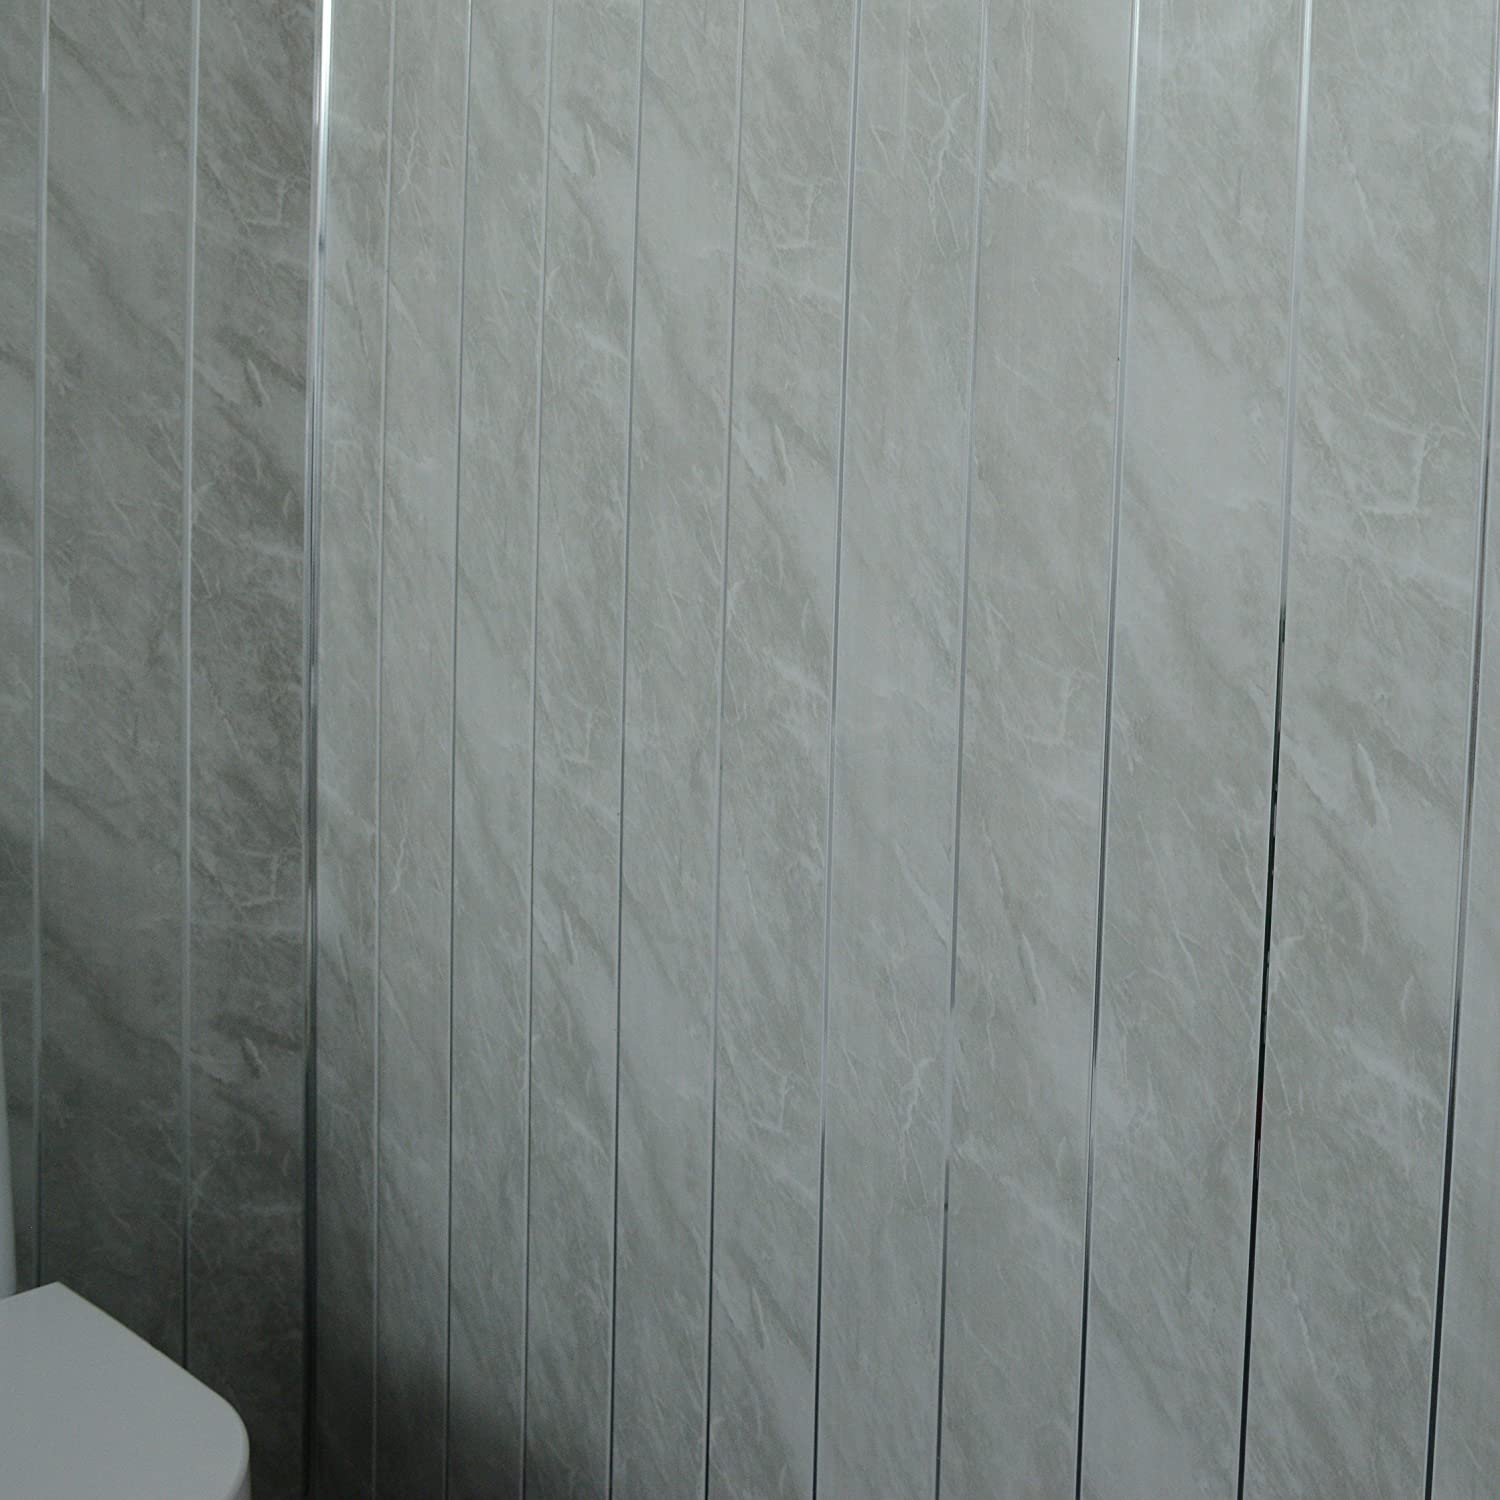 pvc plastic 100/% waterproof 20 panels Claddtech Grey marble wall panels with chrome silver strips wet walls in shower Cladding panels splashbacks used in kitchen office ceiling and walls